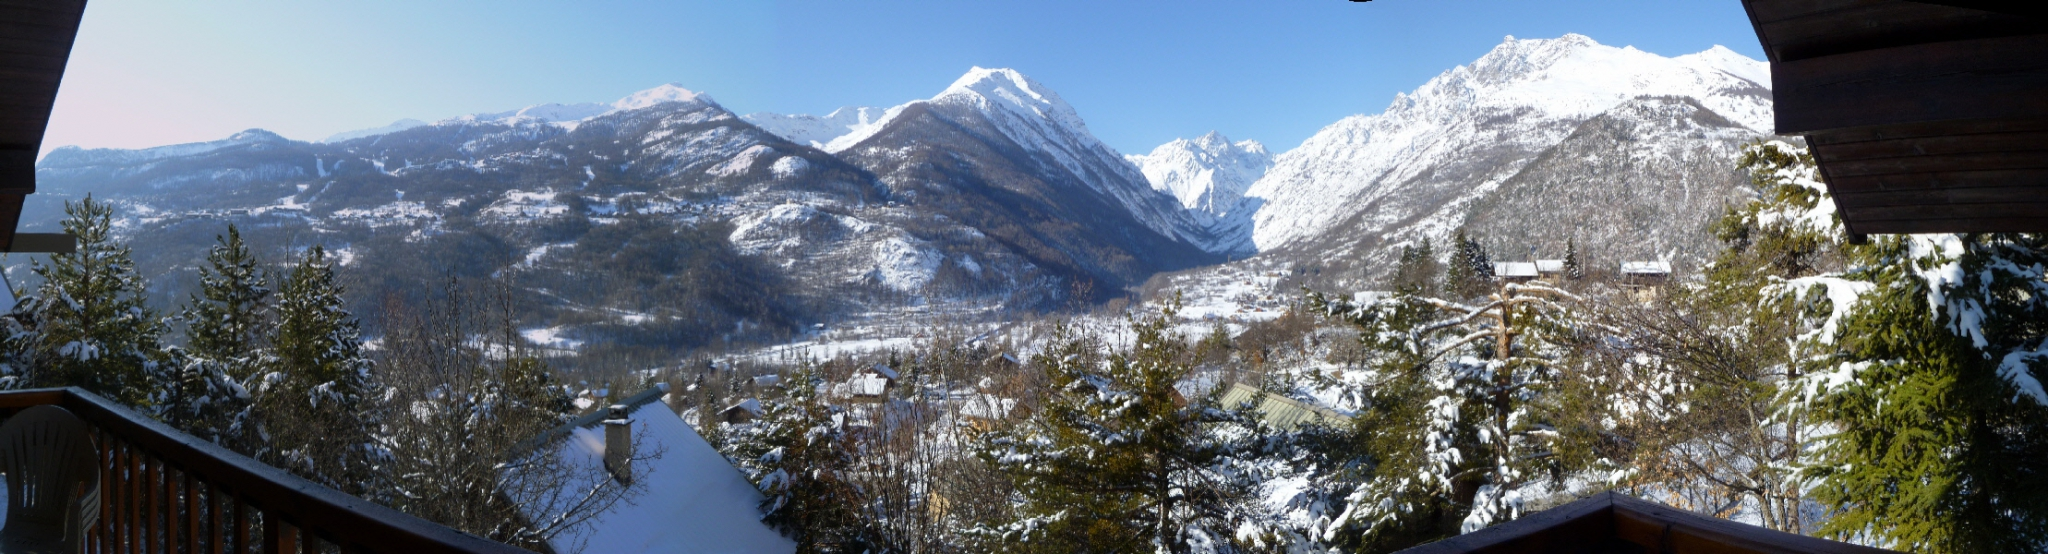 view from chalet ailefroide